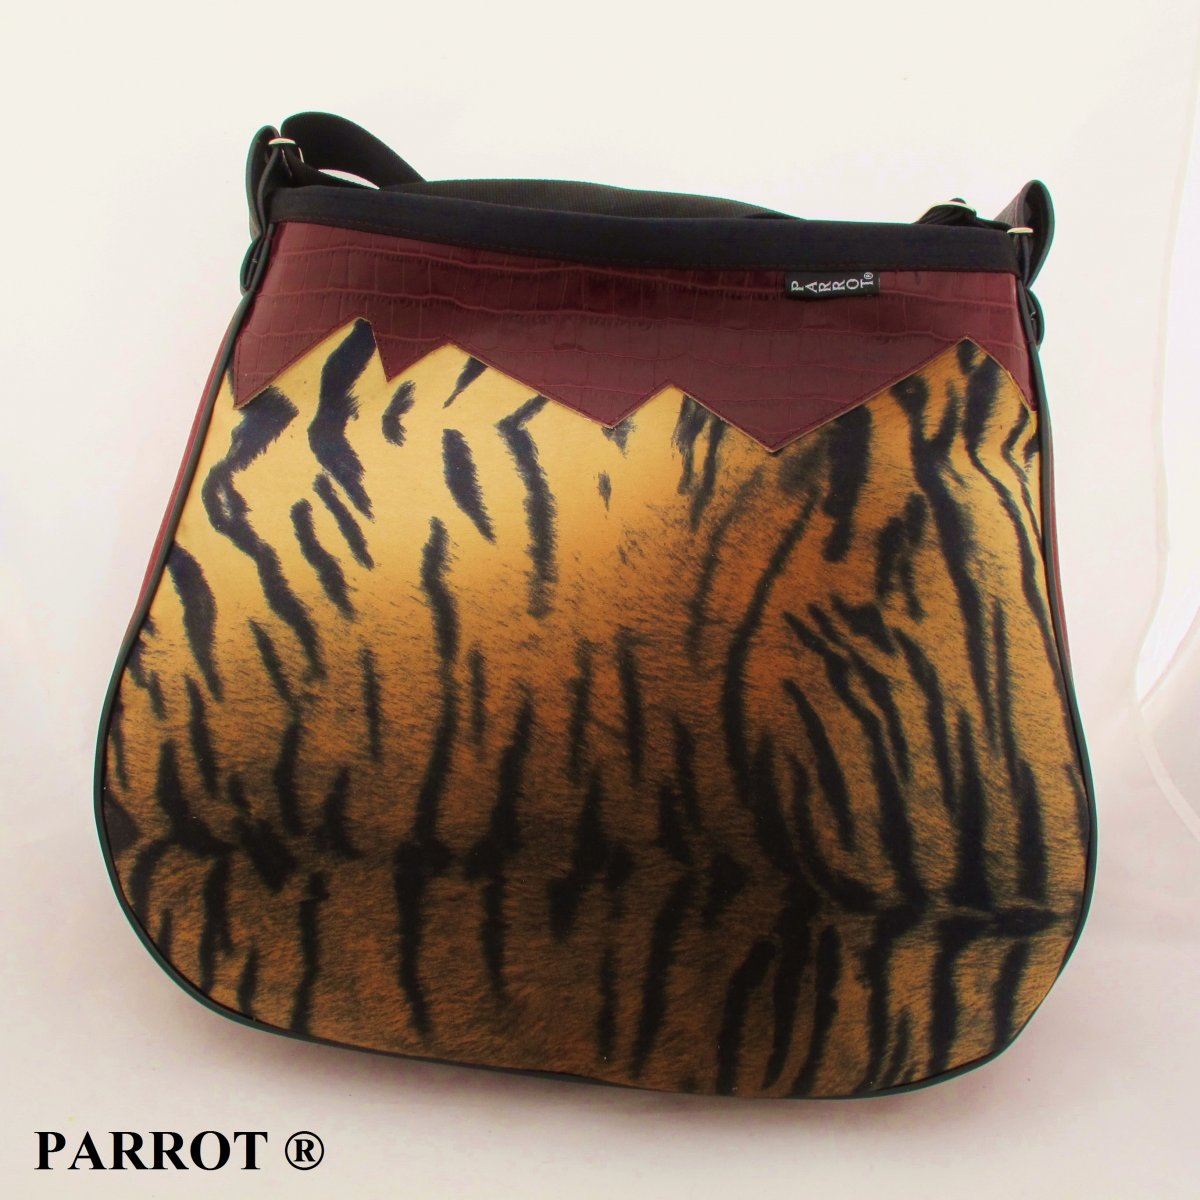 ANIMAL BAG no. 02 - PARROT®